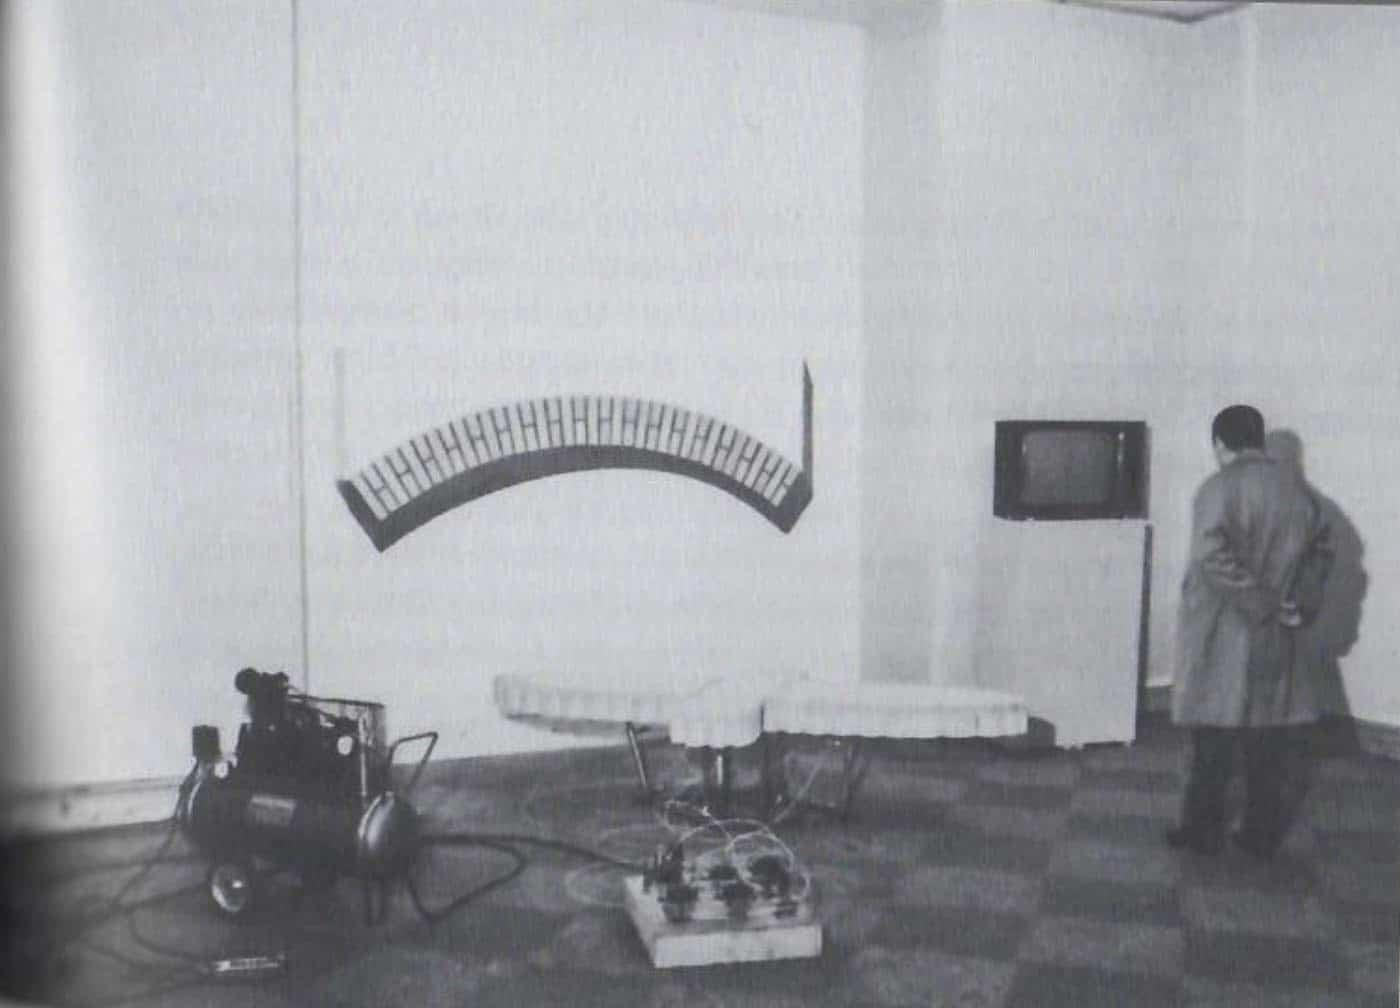 The Third International Biennial of Young Painting, January 70. Behavior, projects, mediations , Museo Civico Archeologico, Bologna, January 1970. Photographic Archive of the Civic Museums of Ancient Art, Bologna Museums Institution